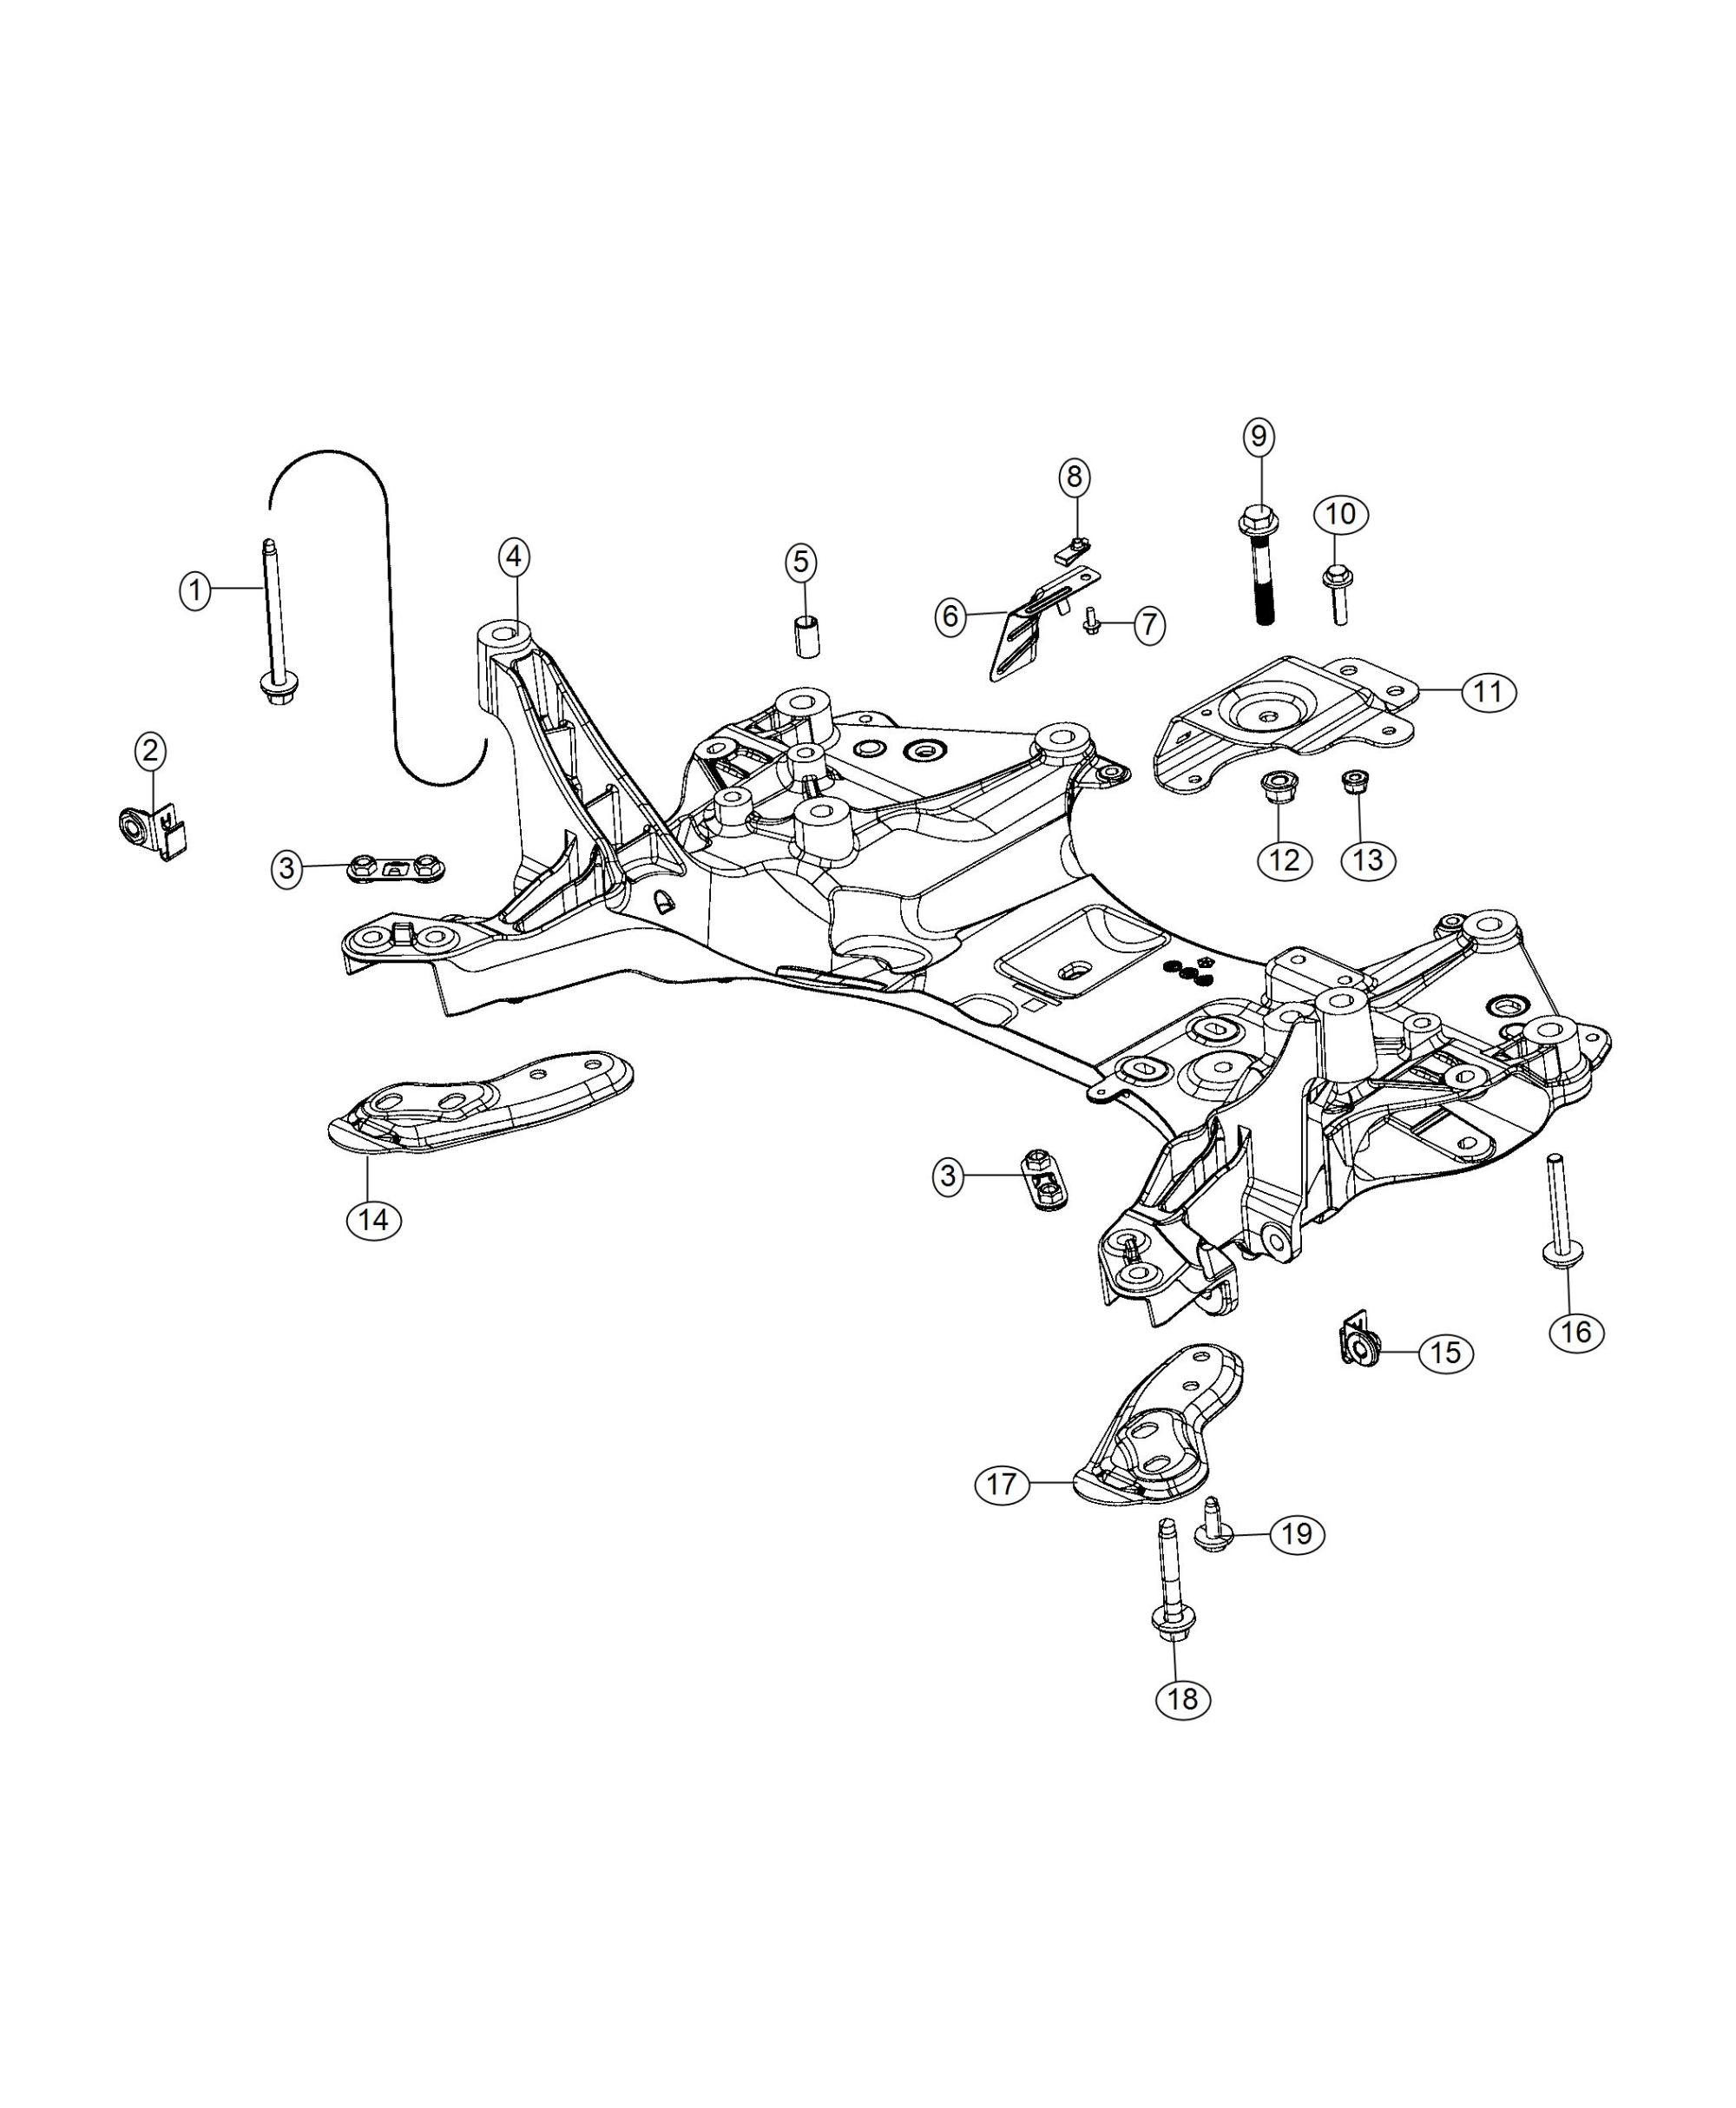 hight resolution of front crossmember suspension cj5 suspension diagram 68145920aa jeep dowel front suspension